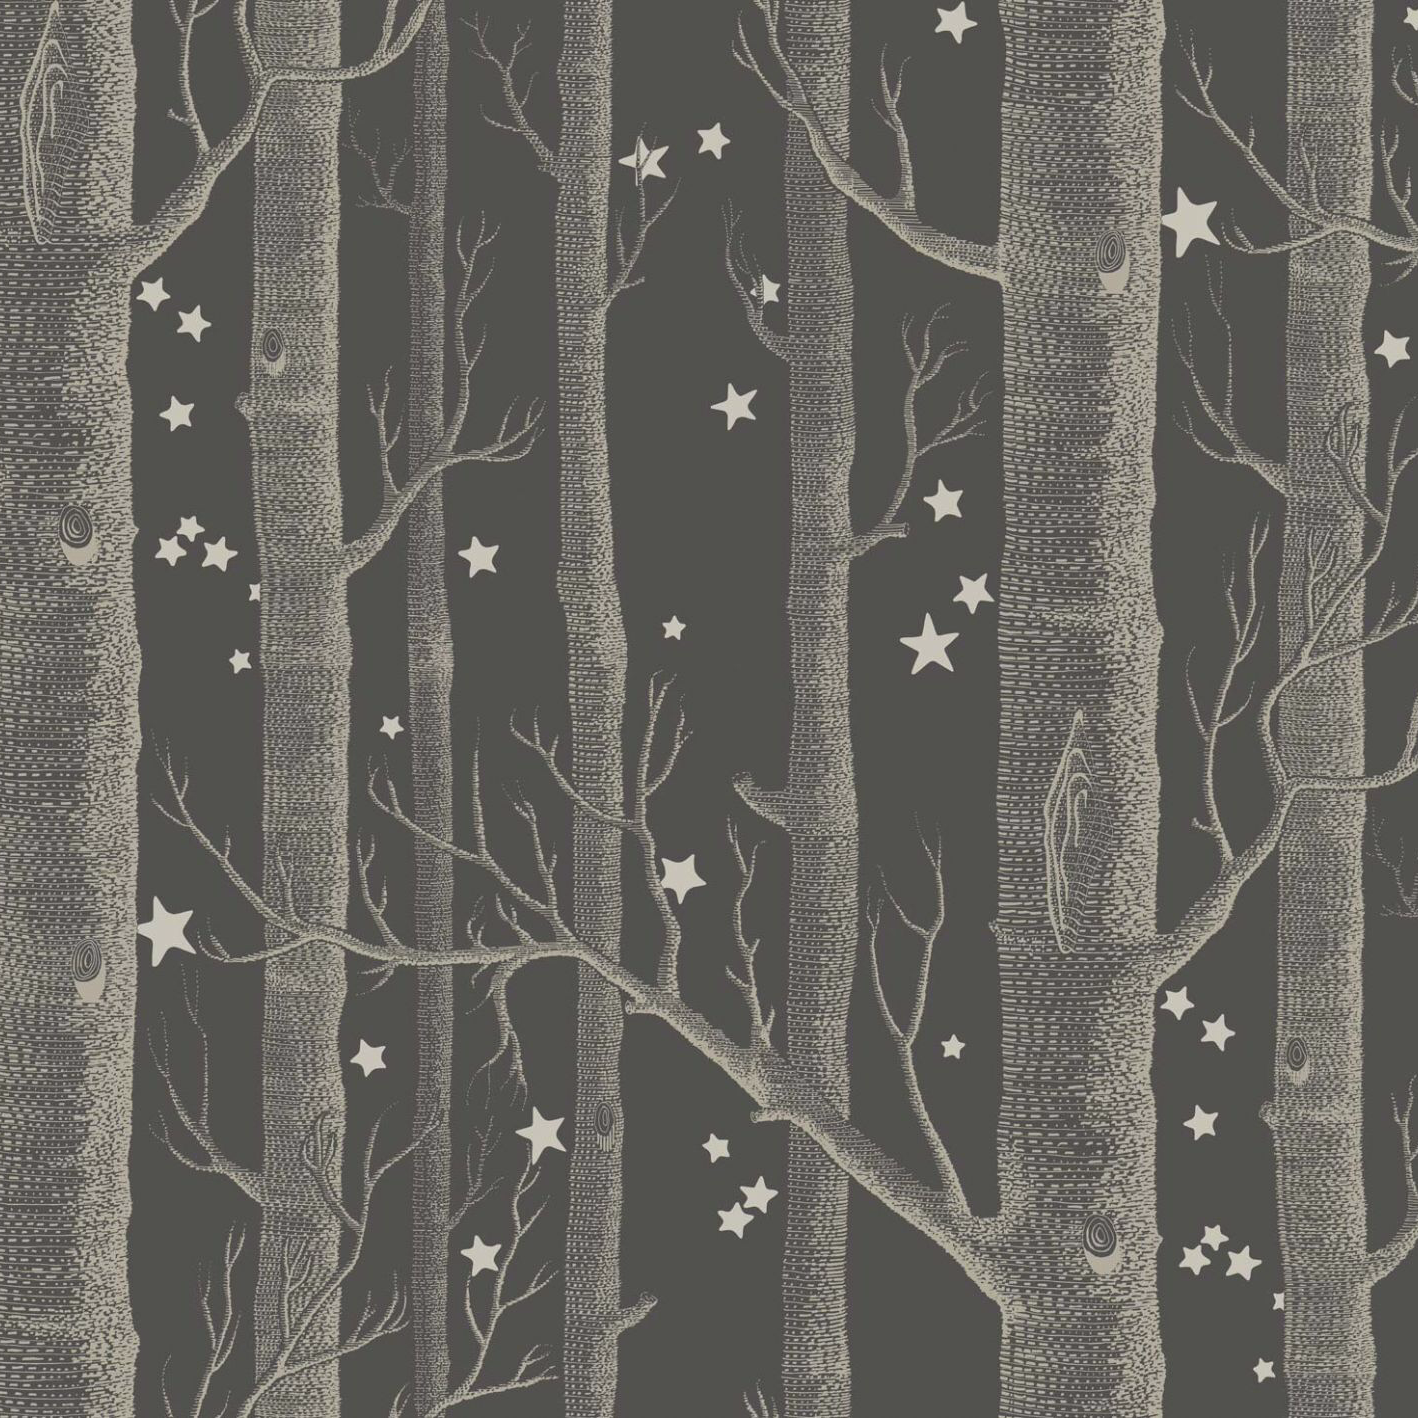 Cole And Son Woods cole & son woods and stars wallpaper 103/11053